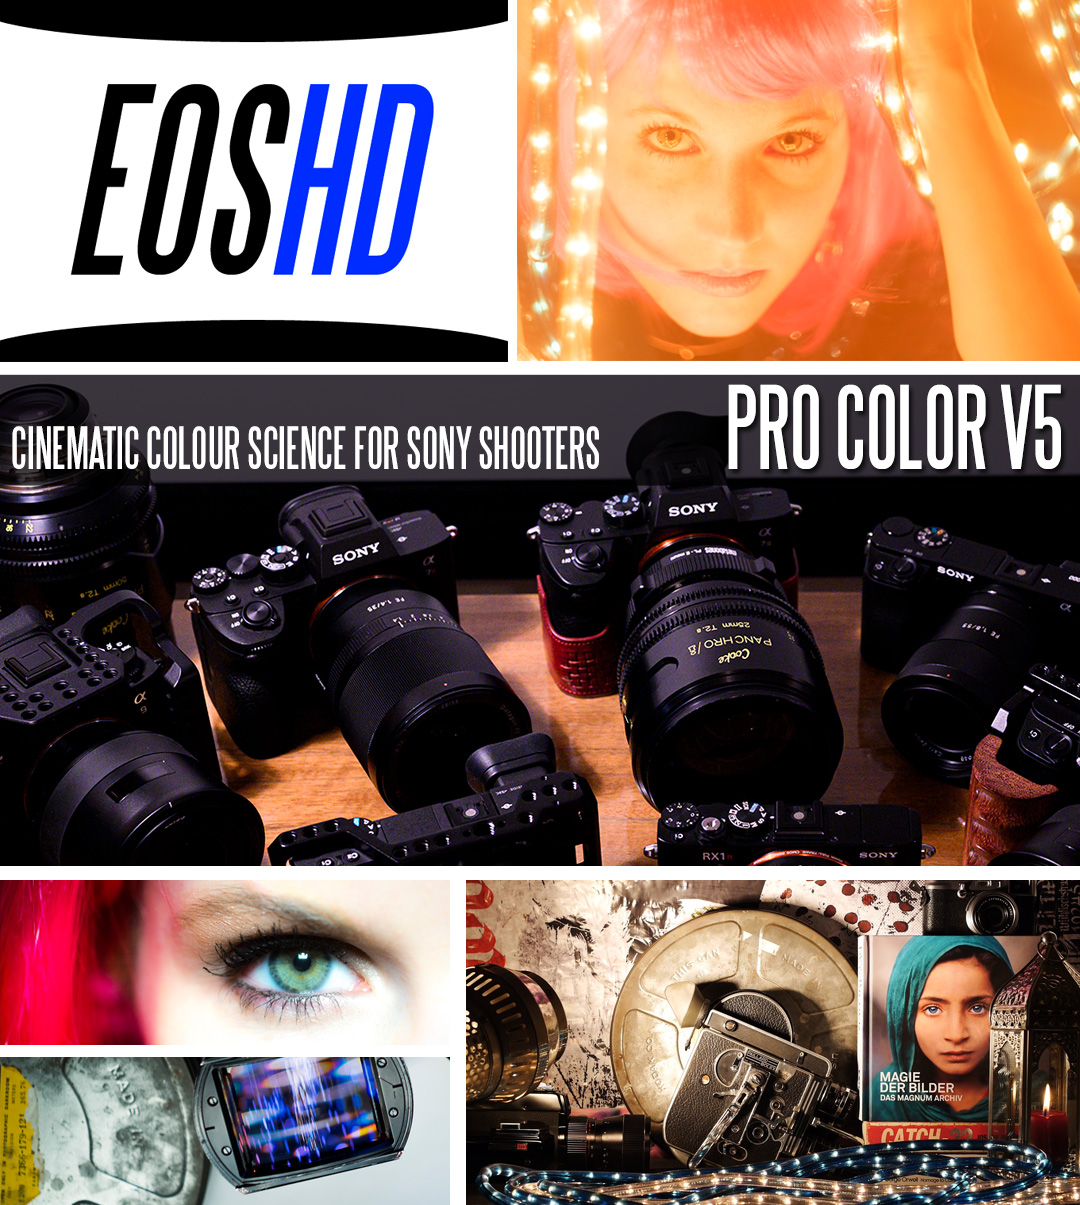 EOSHD Pro Color V5 for Sony